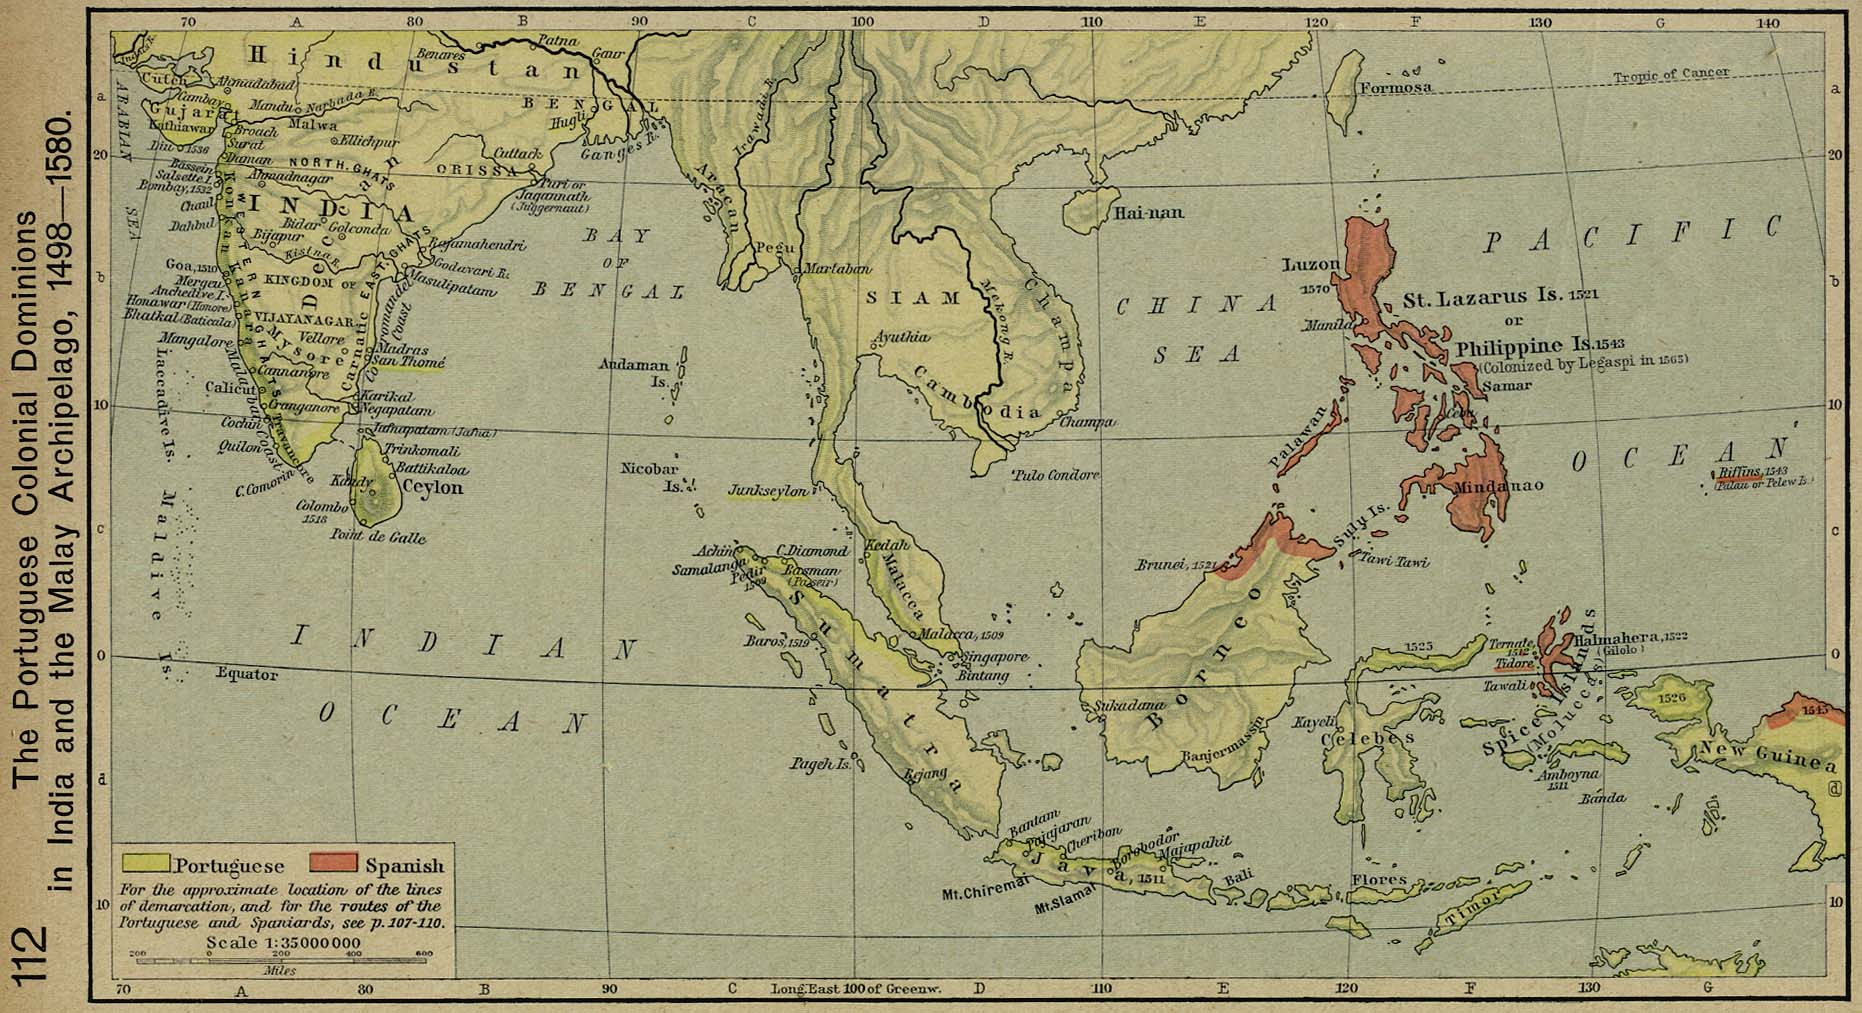 medieval and portuguese commerce in southeast asia